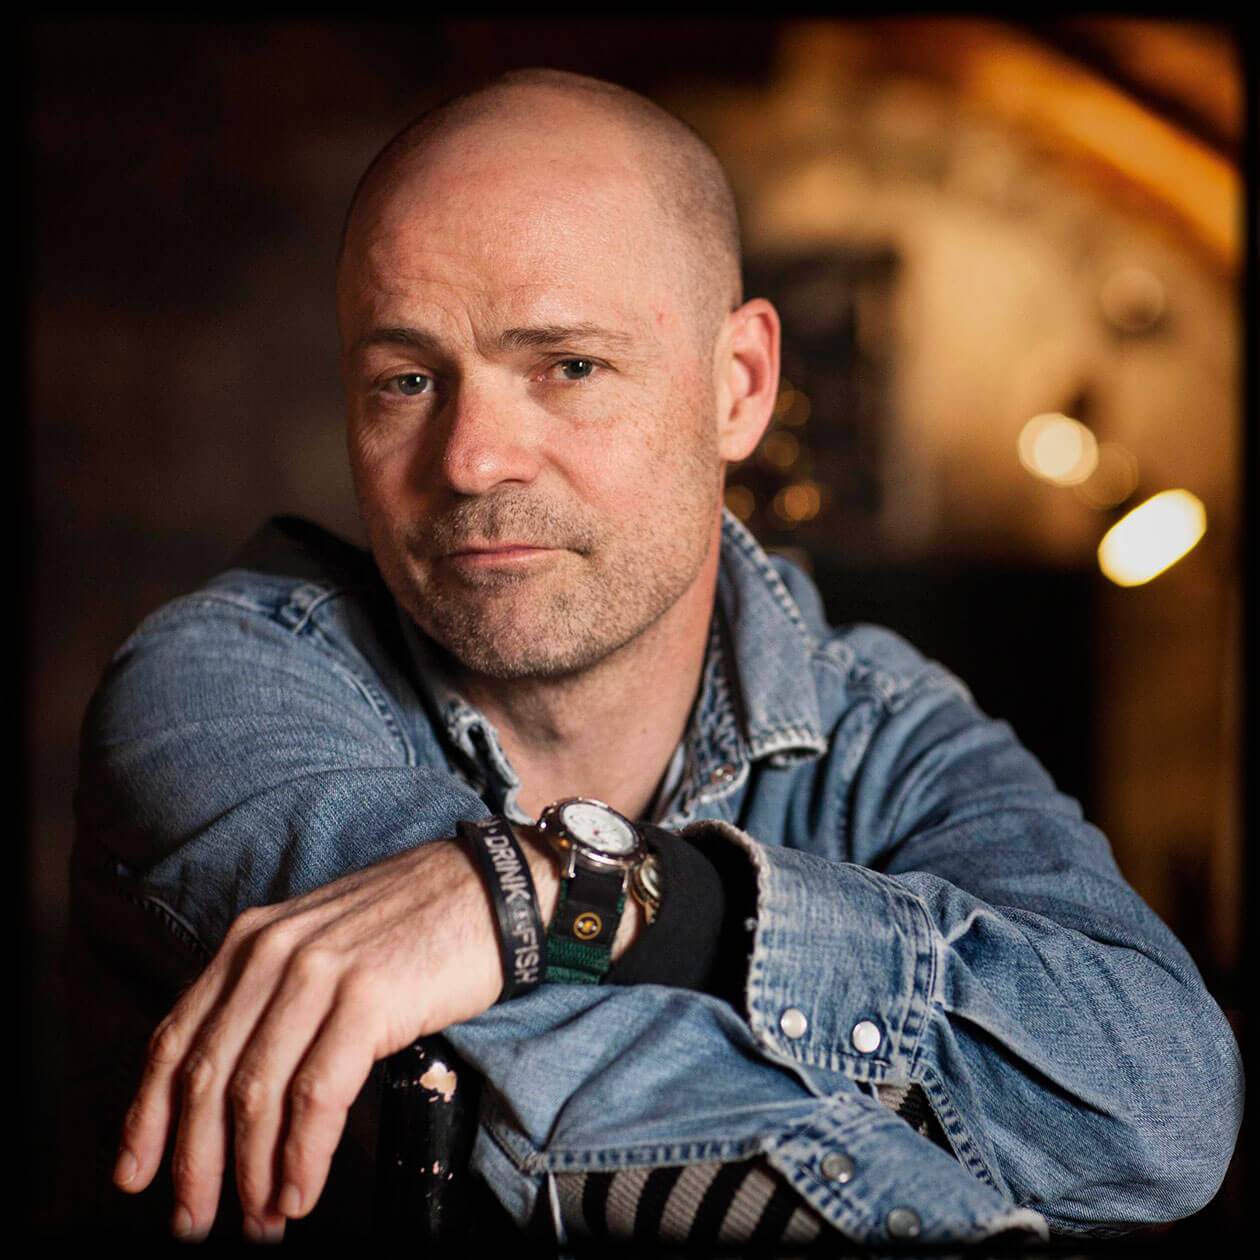 Remembering the life and legacy of Gord Downie (1964 – 2017)